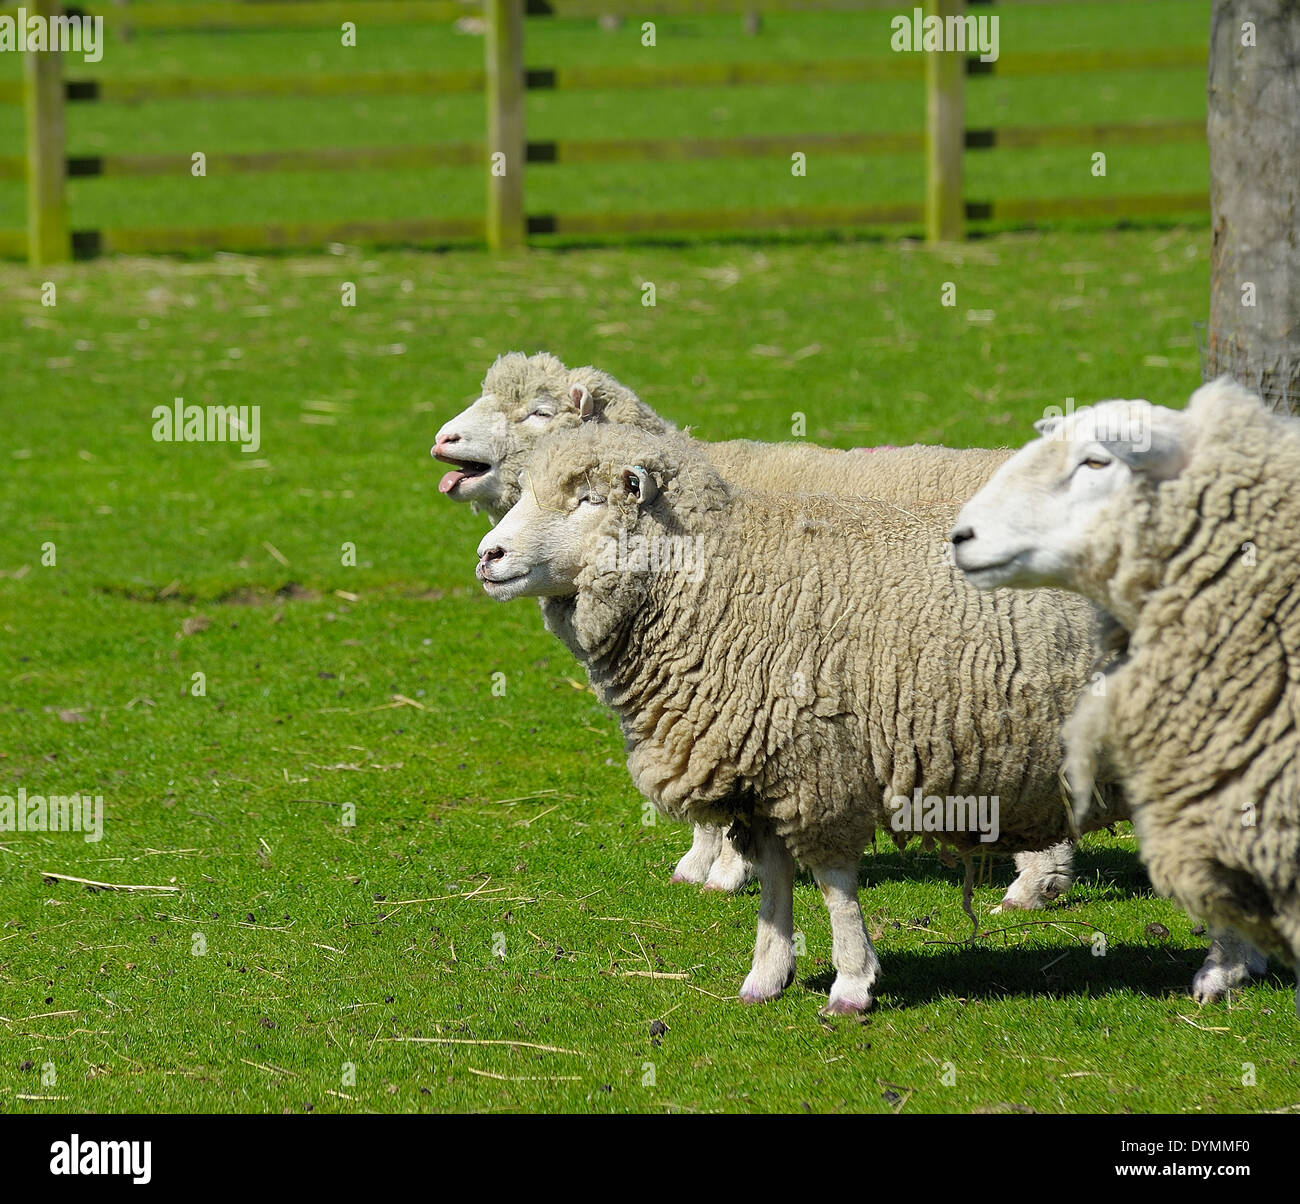 sheep bleating in a field England UK - Stock Image